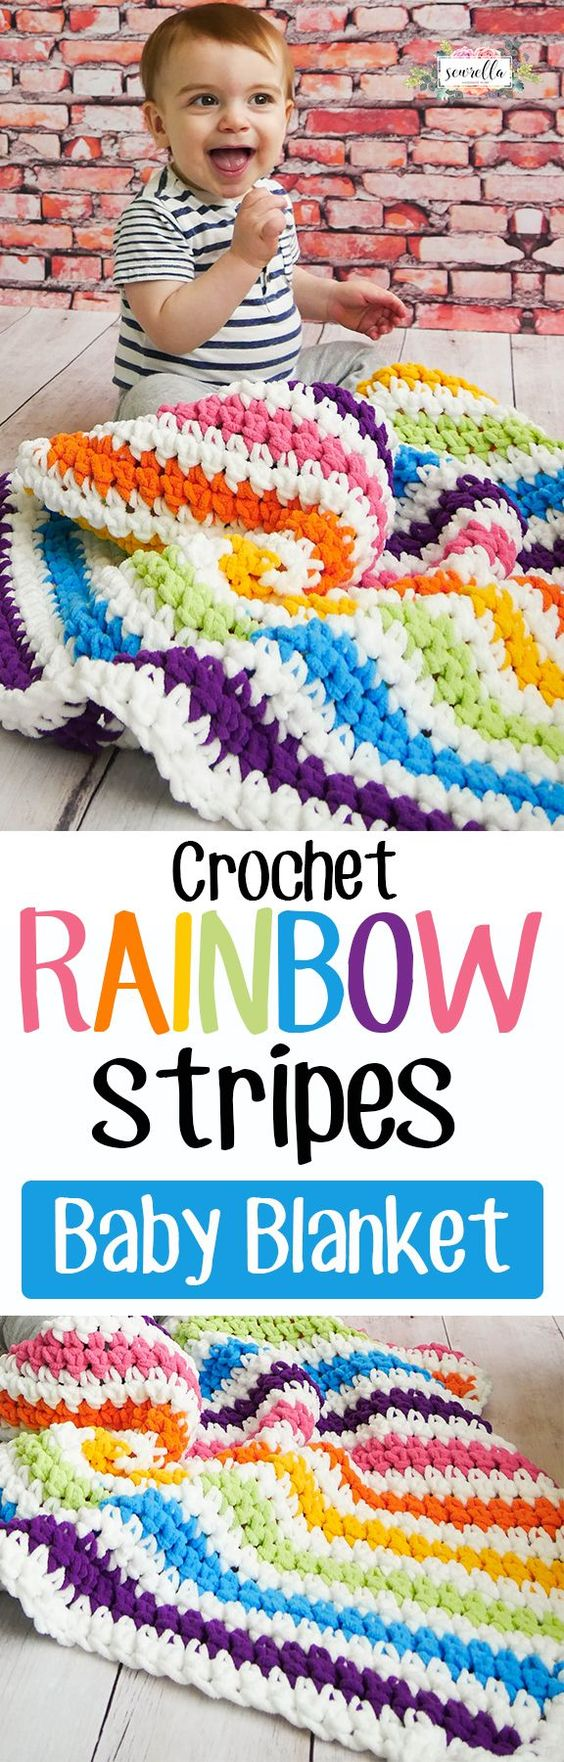 Crochet Rainbow Stripes Baby Blanket.